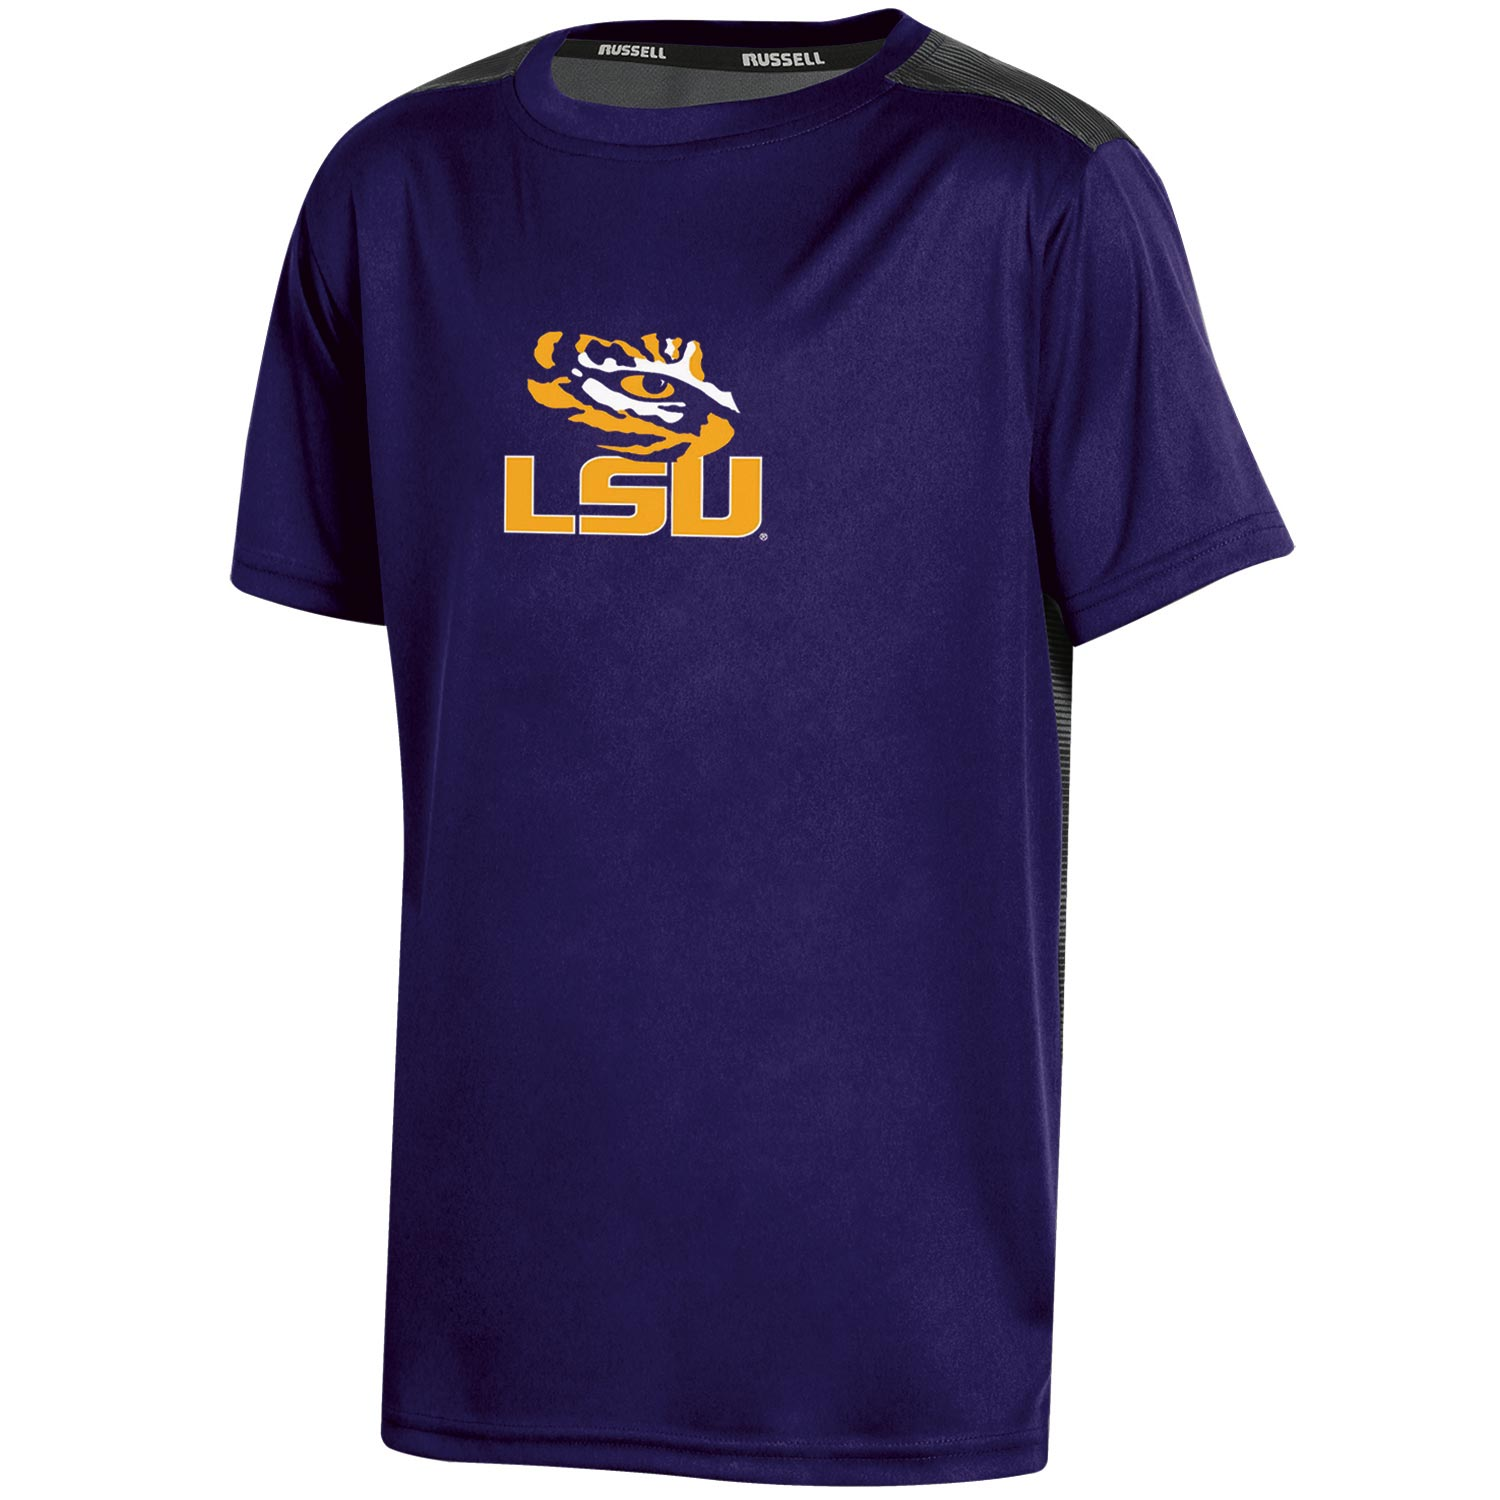 Youth Russell Purple LSU Tigers Color Block T-Shirt